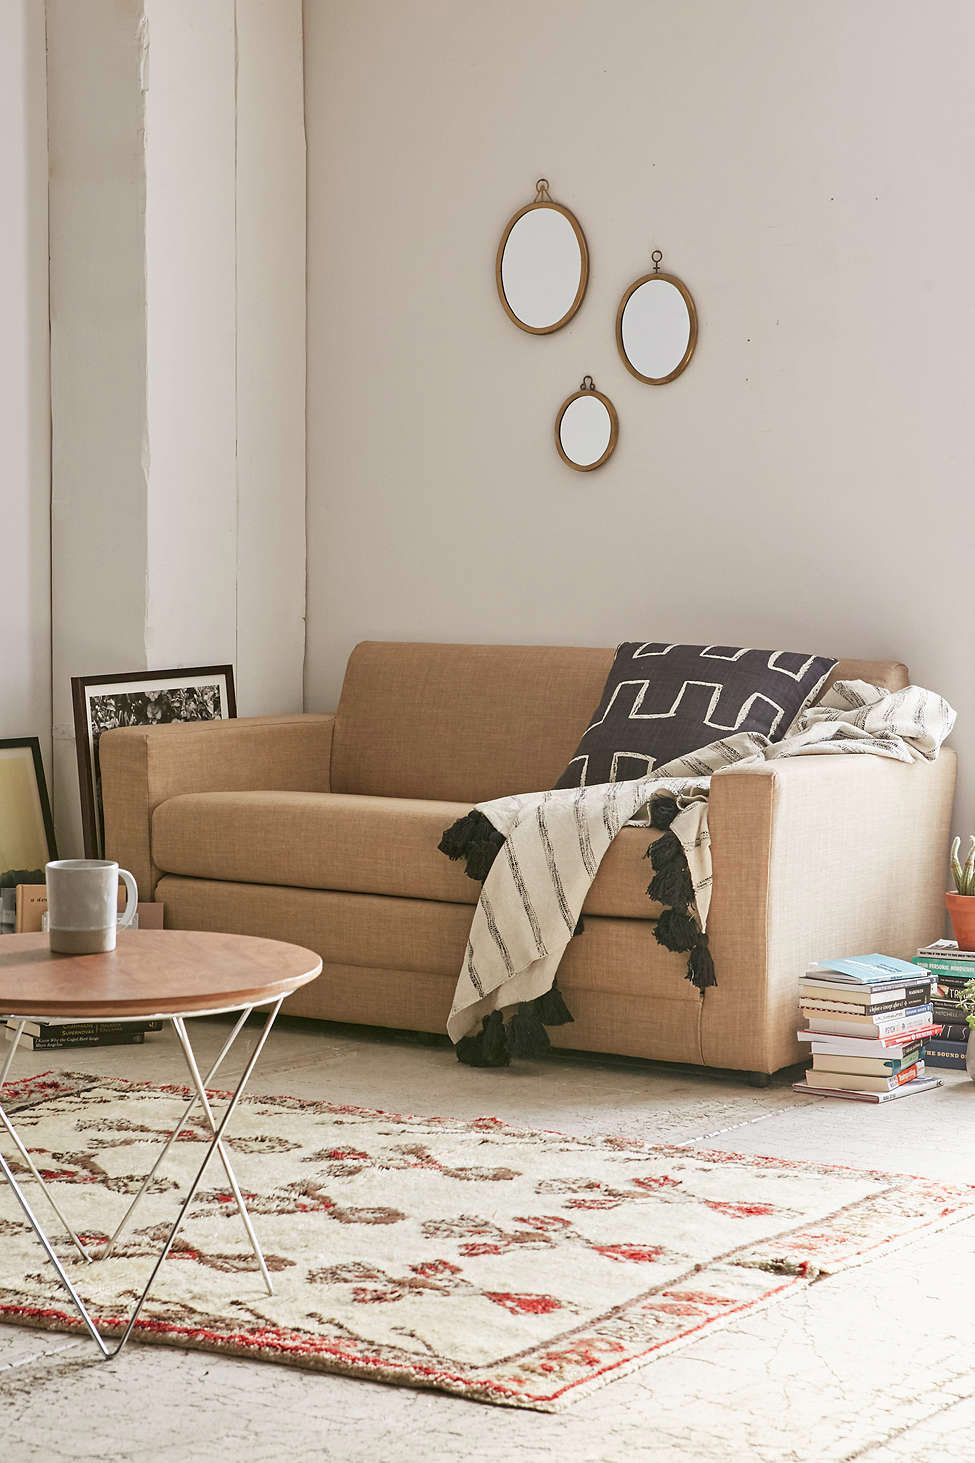 Best Affordable Sofa best affordable s tmanphilly unique best affordable This Great Simple Sofa Is Actually A Convertible That Turns Into A Bed On The Floor For Your Overnight Guests If You Want Something More Modern And